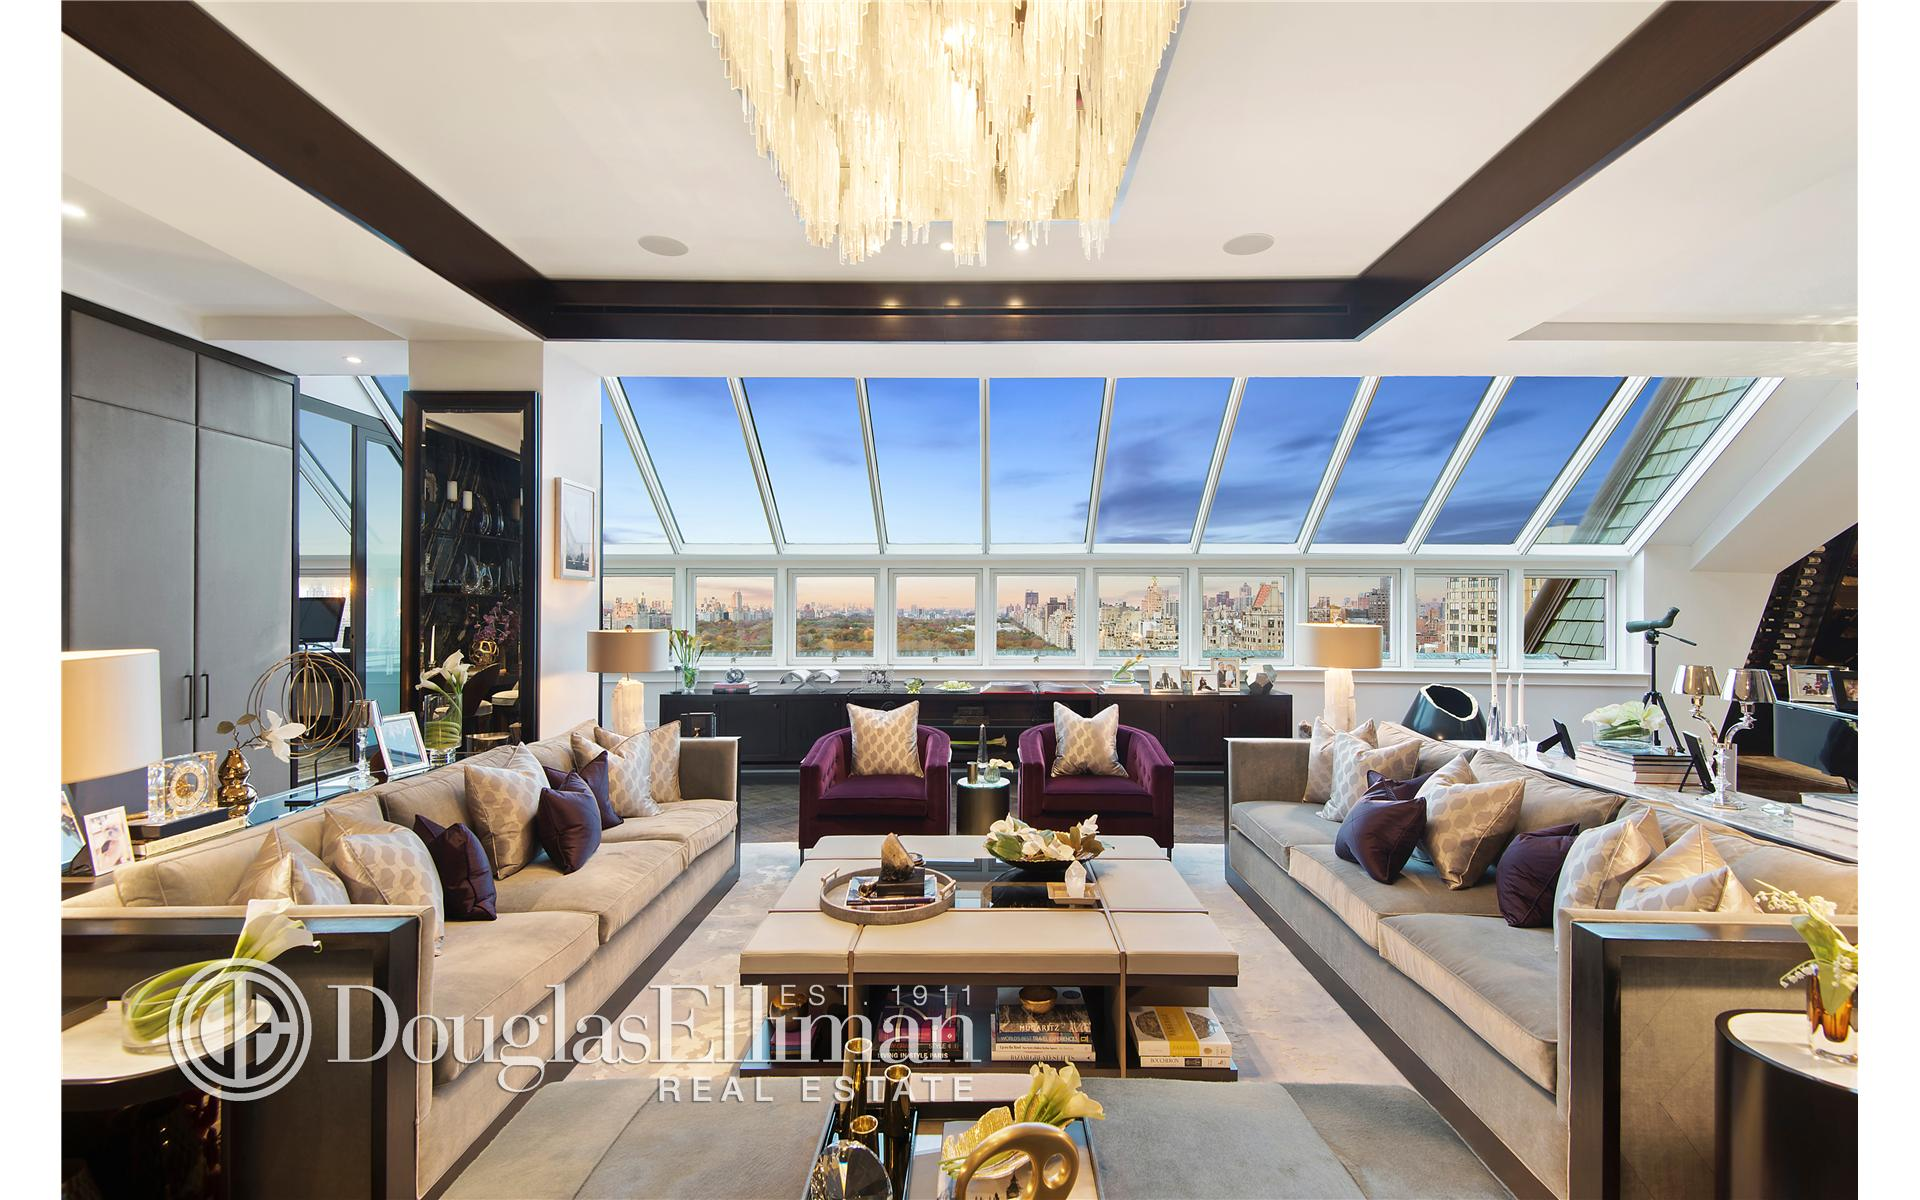 Condominium for Sale at The Plaza Residences, The Plaza Residences, 1 Central Park South New York, New York 10019 United States